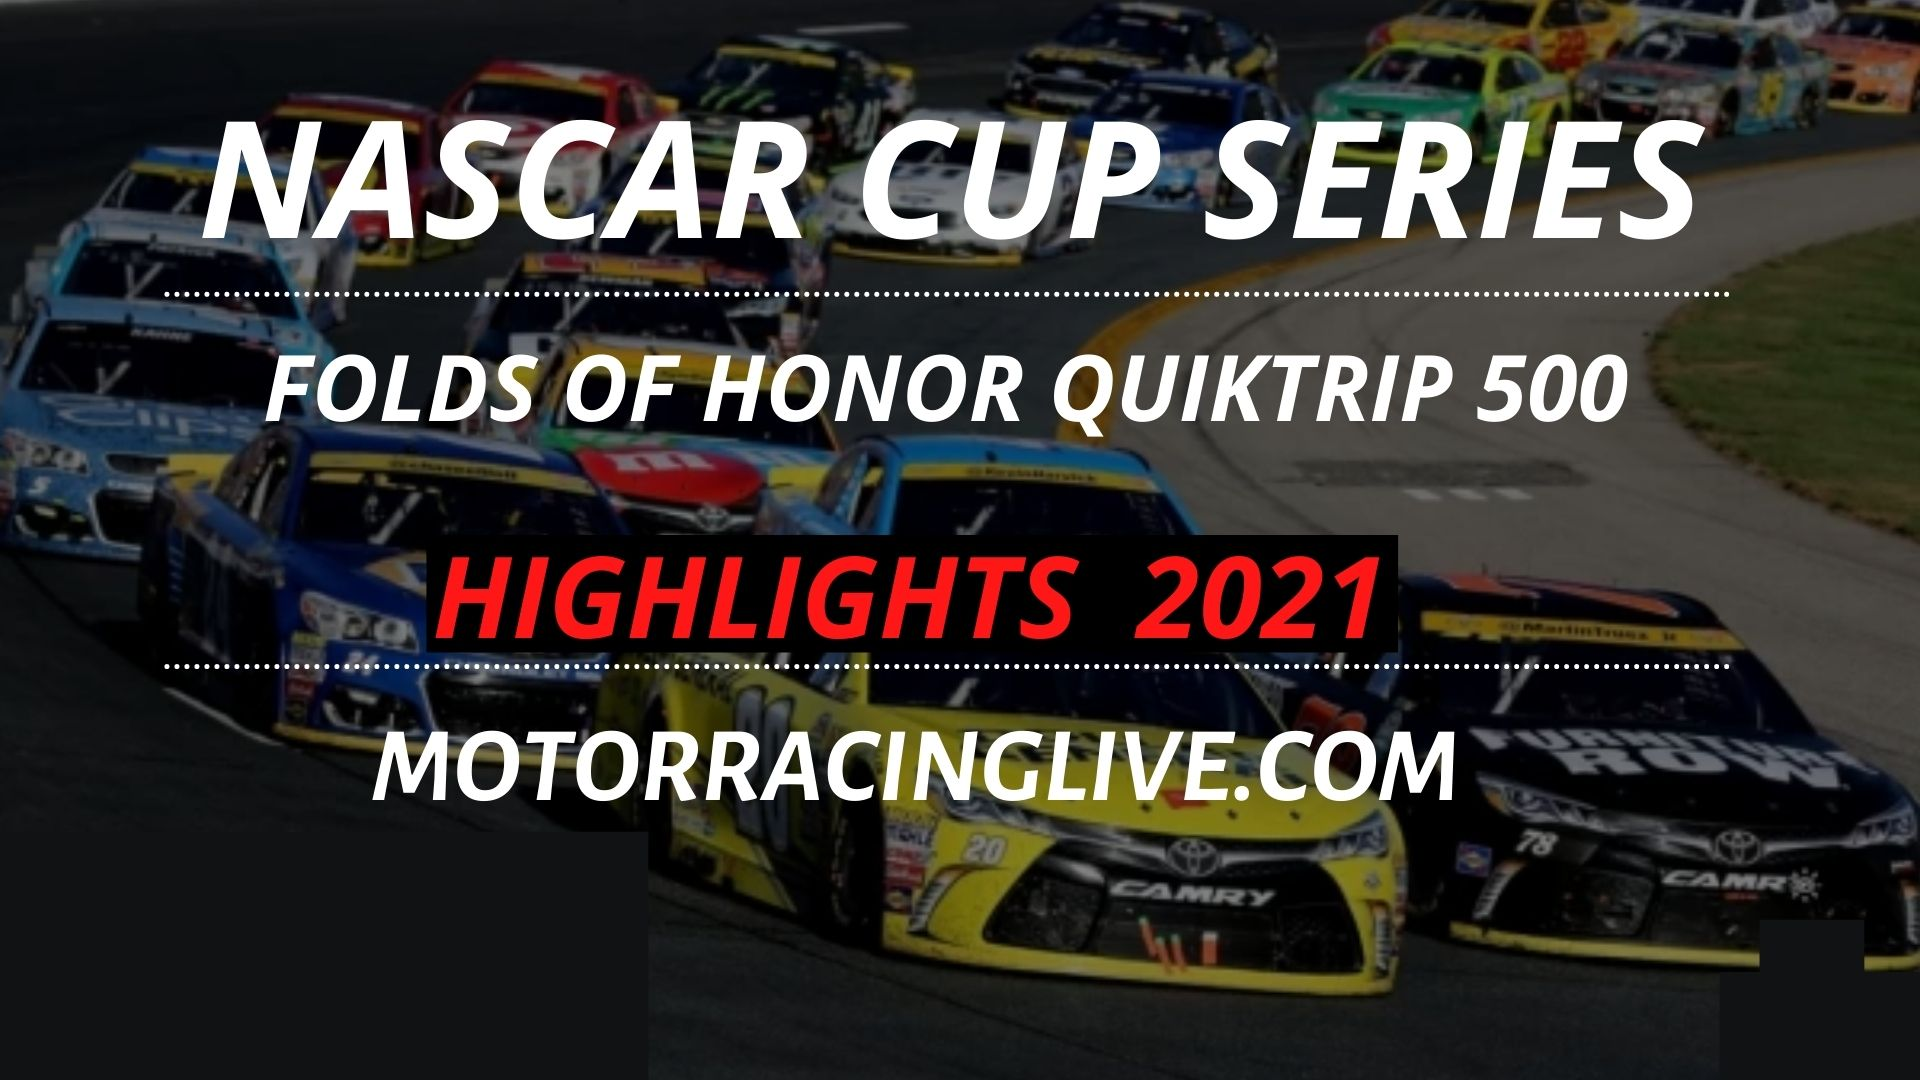 Folds Of Honor Quiktrip 500 Highlights 2021 Nascar Cup